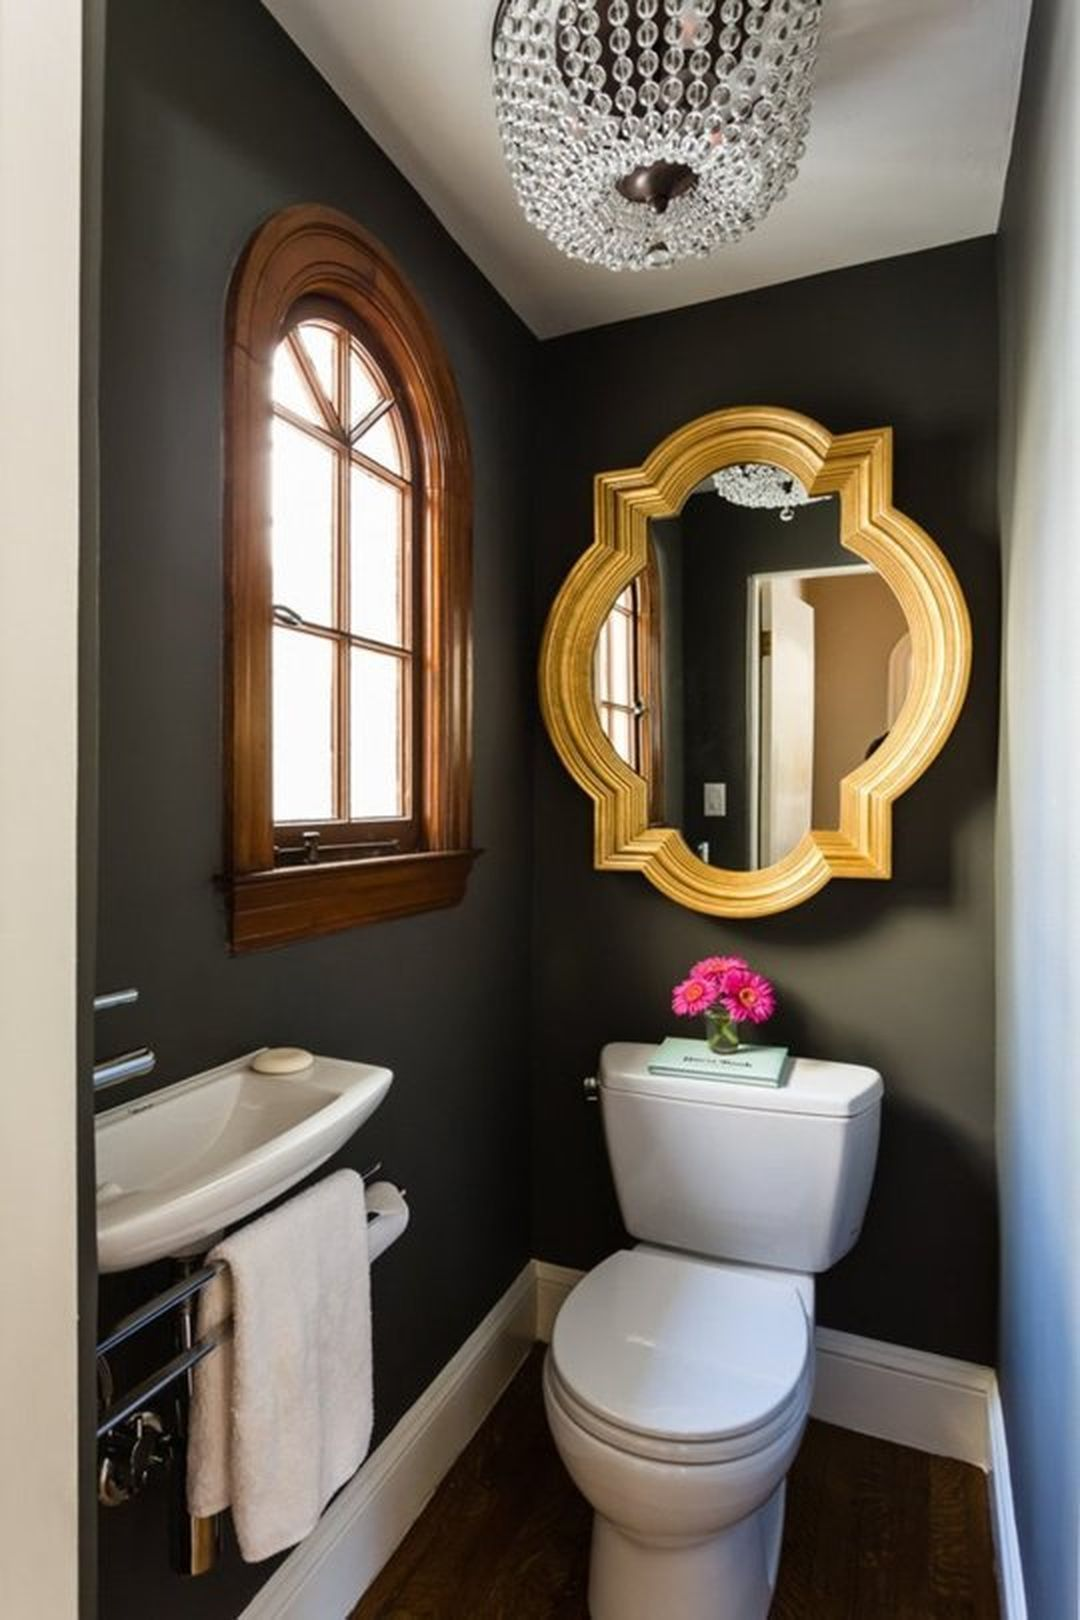 44 Crazy And Beautiful Tiny Powder Room With Color And Tile Just